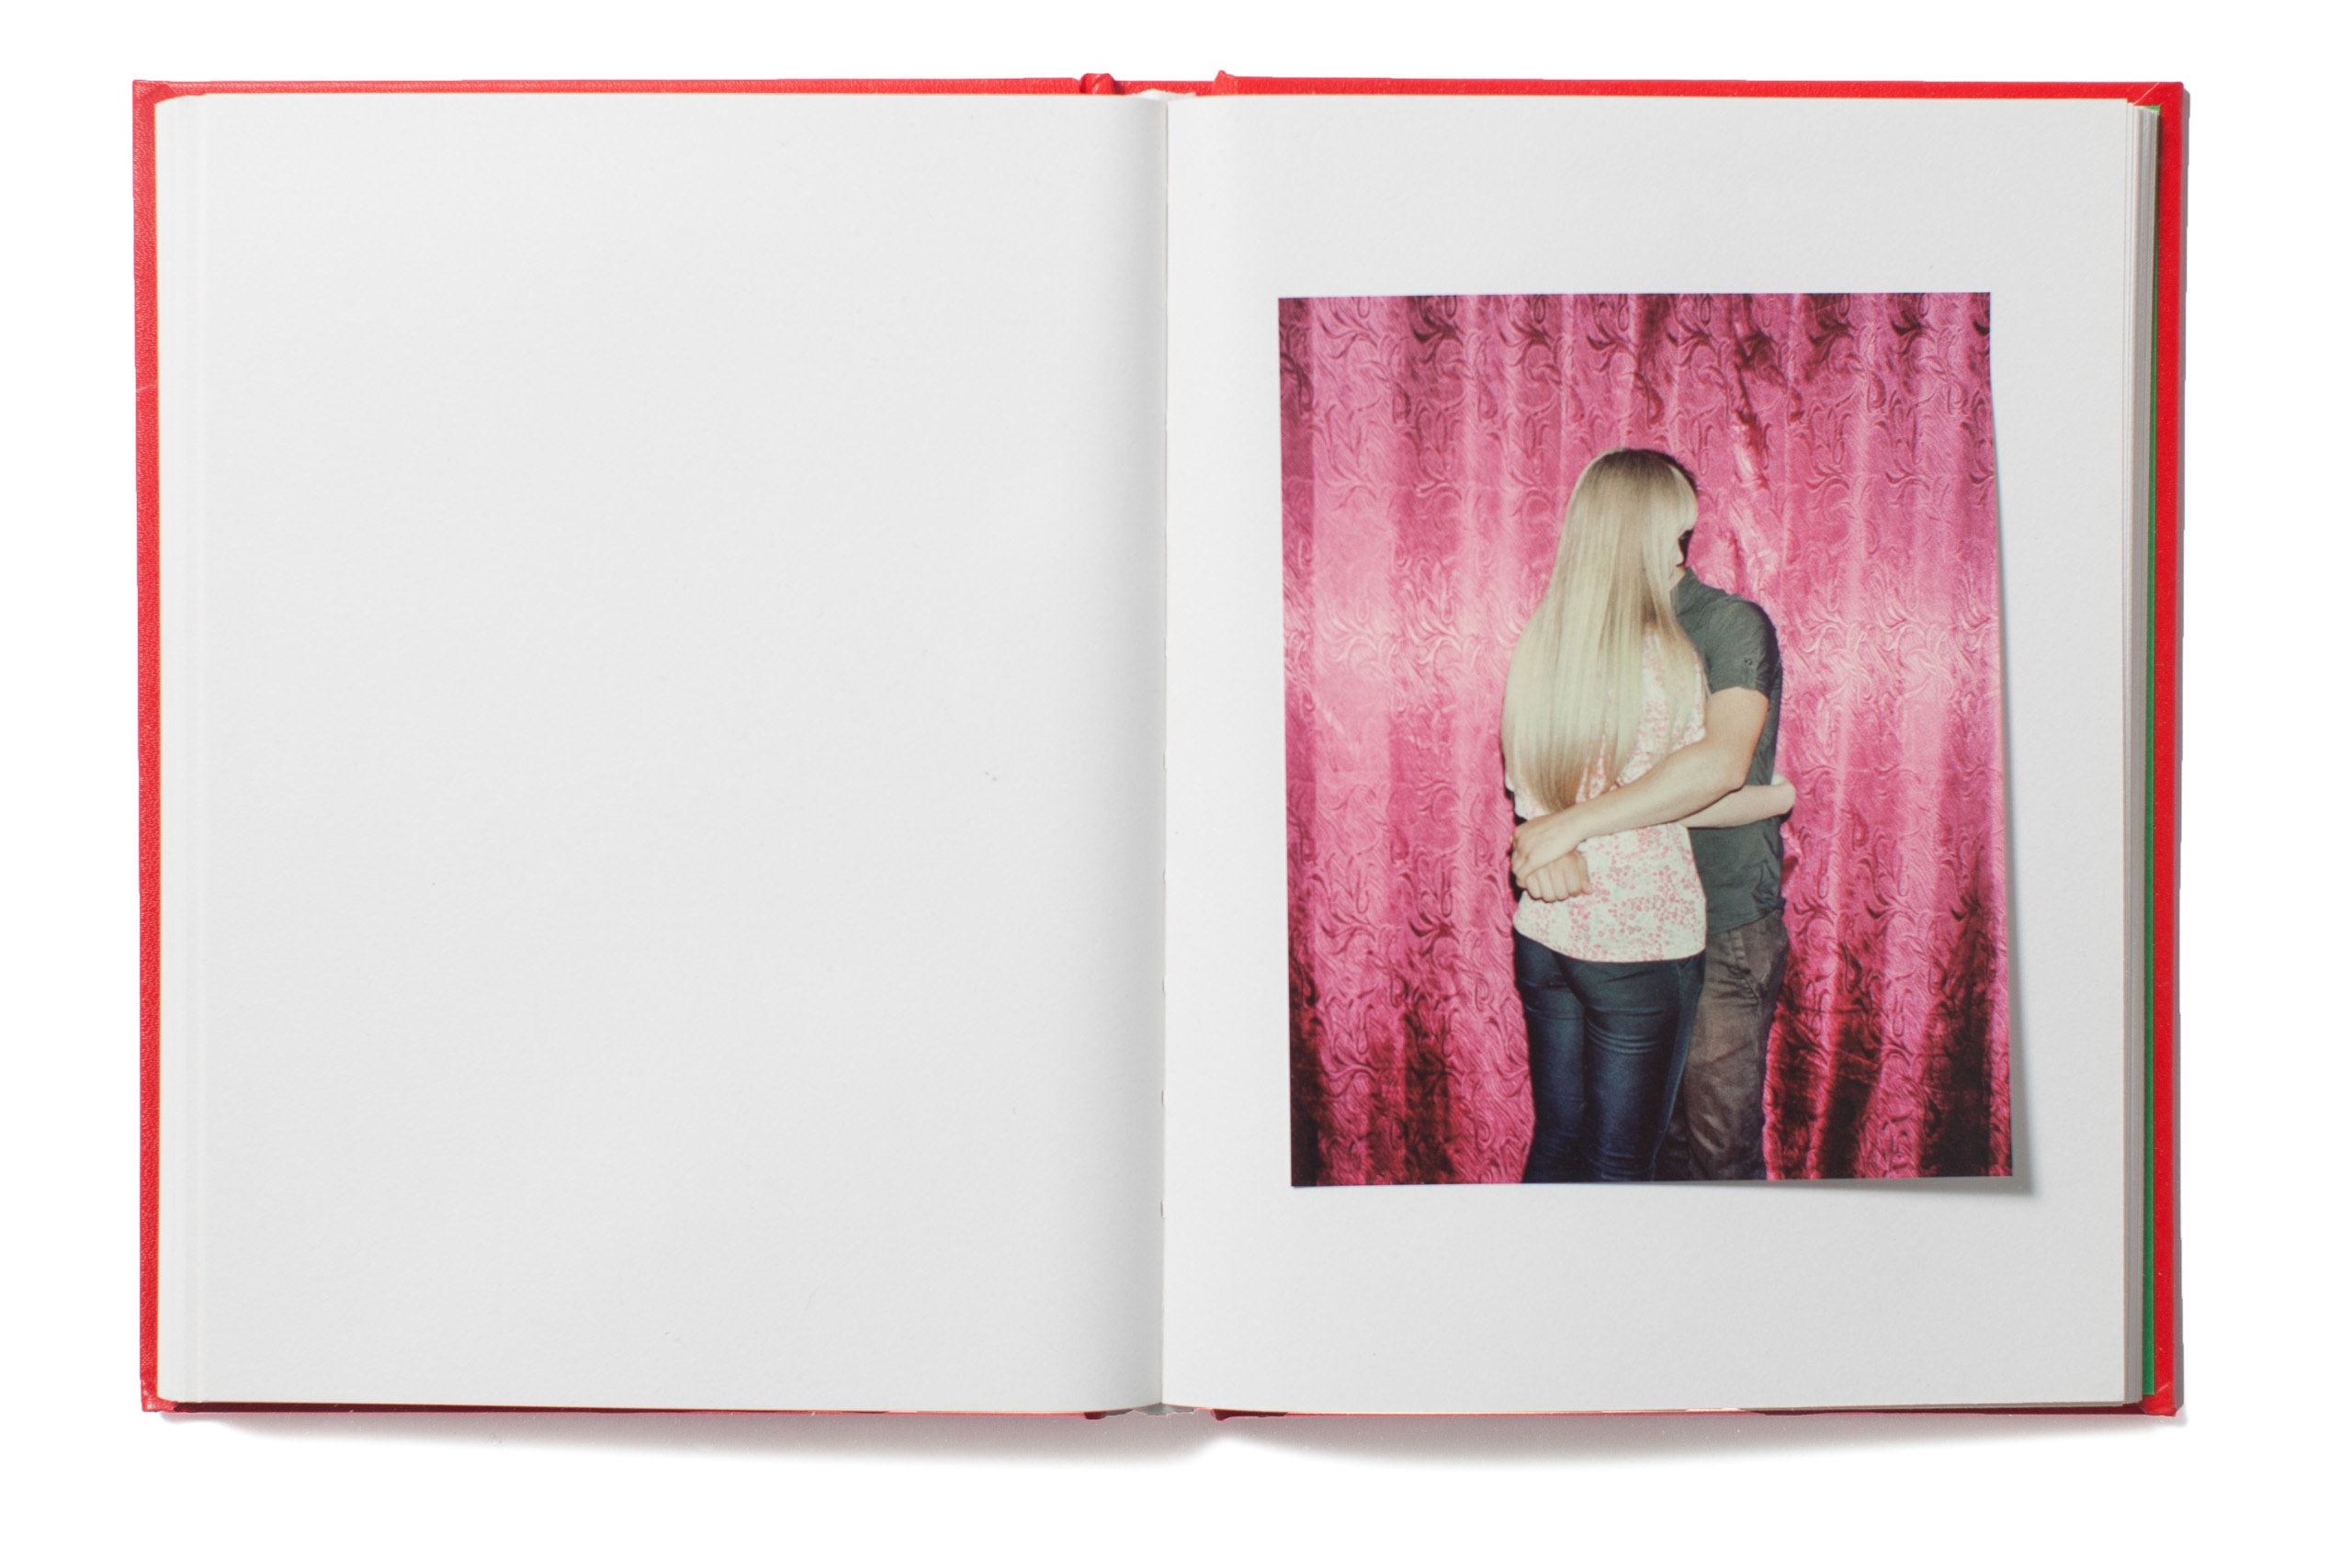 """""""It's rare to see photography as realized and complex as Rafal Milach'sThe Winners, a projectdocumenting notable people, things, and institutions of Belarus. Milach's oft-deadpan portraits are reticent, yet hyperbolically uncanny, and capturesthe truth beyond the pageantry ofa country on economic decline. Taking a leap ahead of our current taste for simplistic irreverence, the project exudes wit, humor, and—perhaps most importantly—socio-political discourse. The project is as fine a display of its author's documentary restraint as it is an exhibition of his eye for aesthetic formalism.The book, in which the images are published, is designed with a elegant concision on par with the photography for which it contains.""""                                                                      -Alexander Ho, Digital Art Director, <i>TIME</i>"""